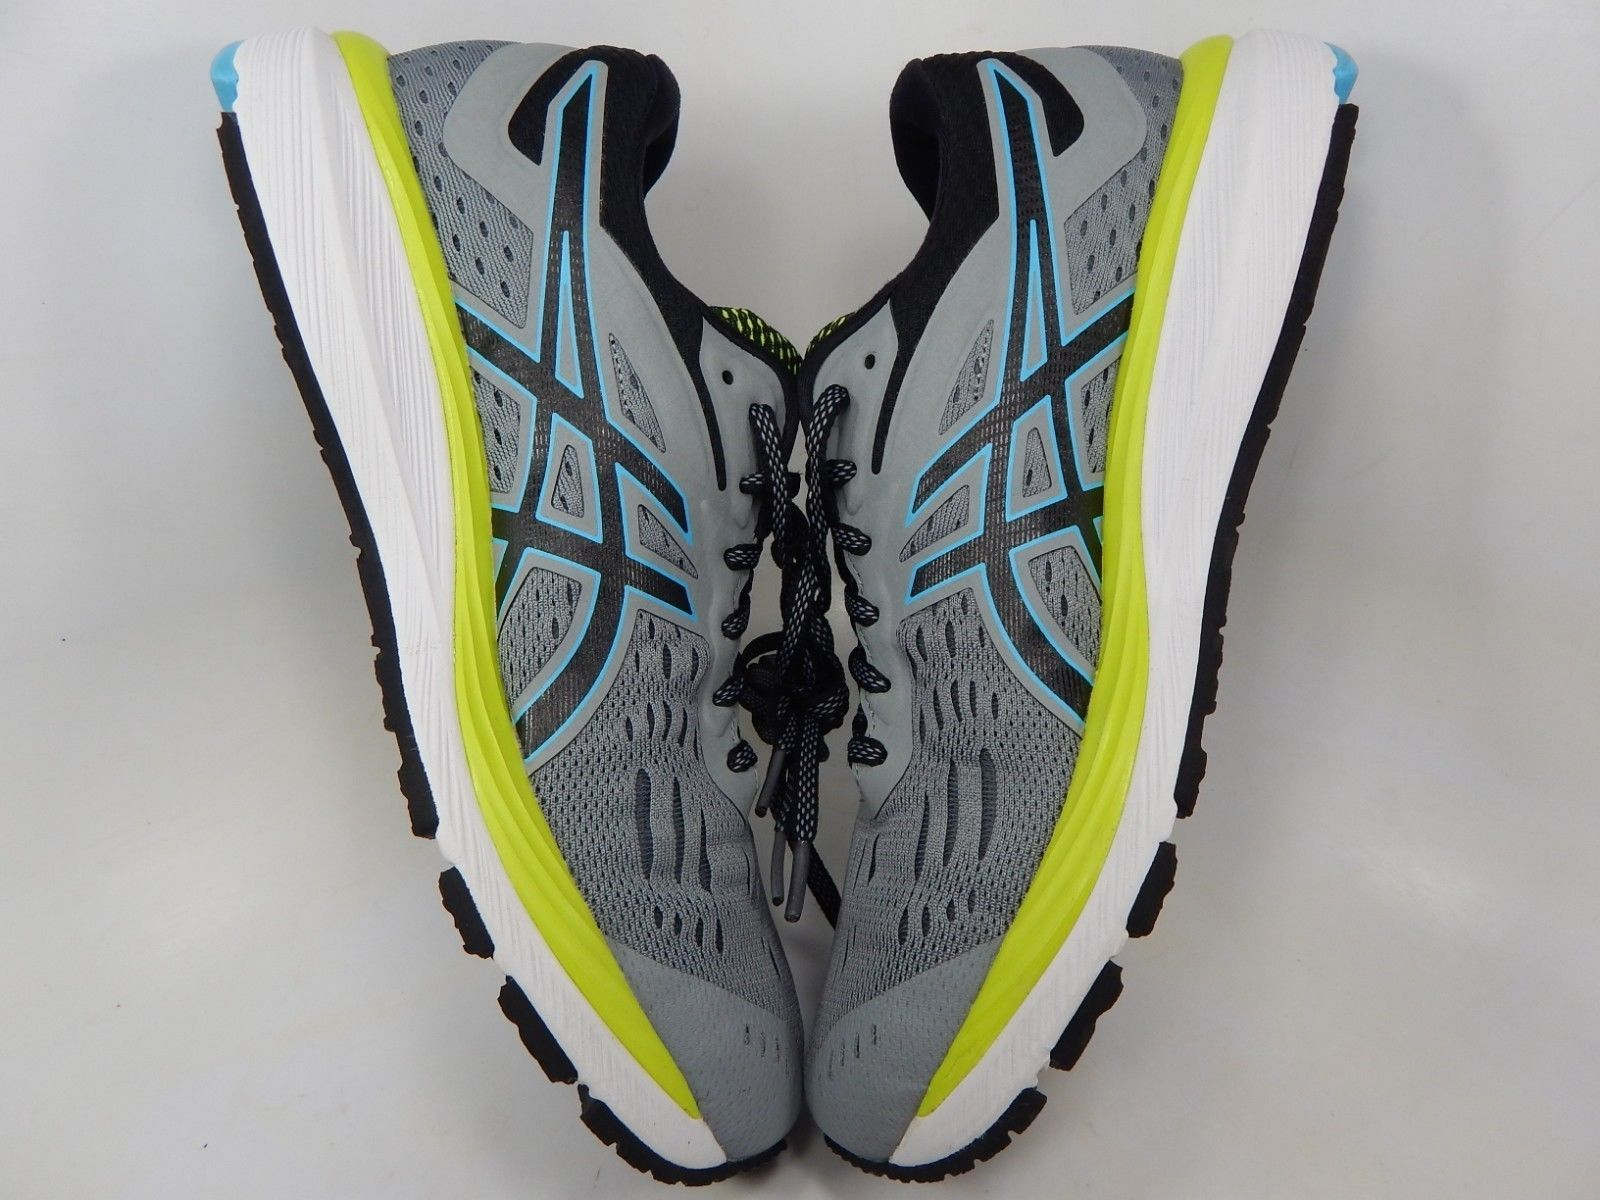 Asics Gel Cumulus 20 Size 9.5 M (B) EU 41.5 Women's Running Shoes Gray 1012A008